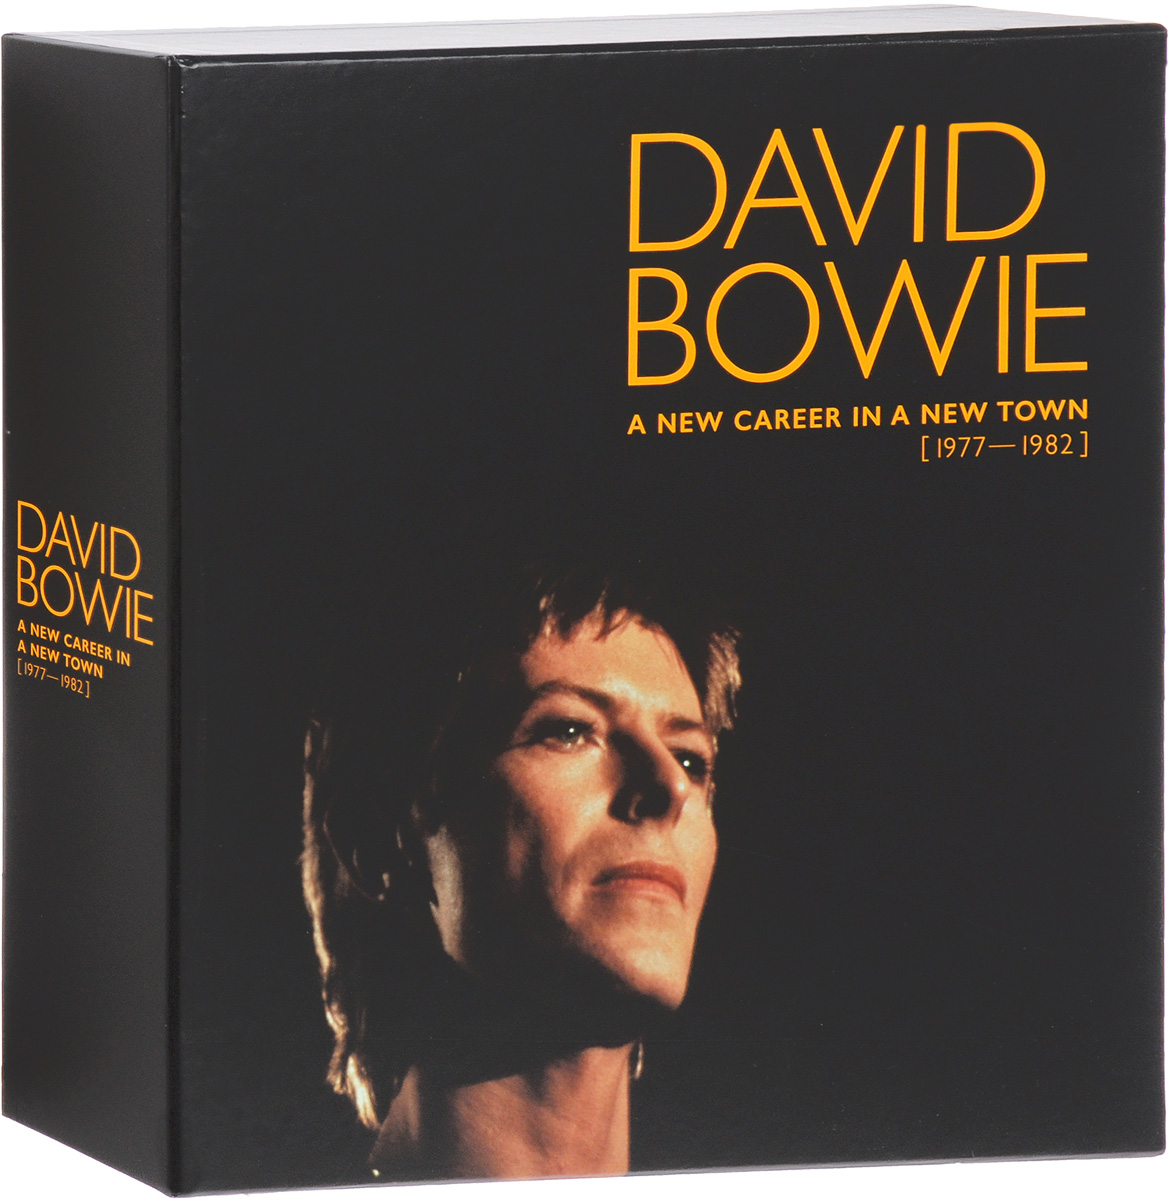 Дэвид Боуи,Брайан Ино,Карлос Аломар,Queen,Бинг Кросби David Bowie. A New Career In A New Town (1977-1982) (13 LP) new princess white lace cake skirt dress outfit for 1 3 1 4 1 6 bjd sd msd yosd luts doll clothes